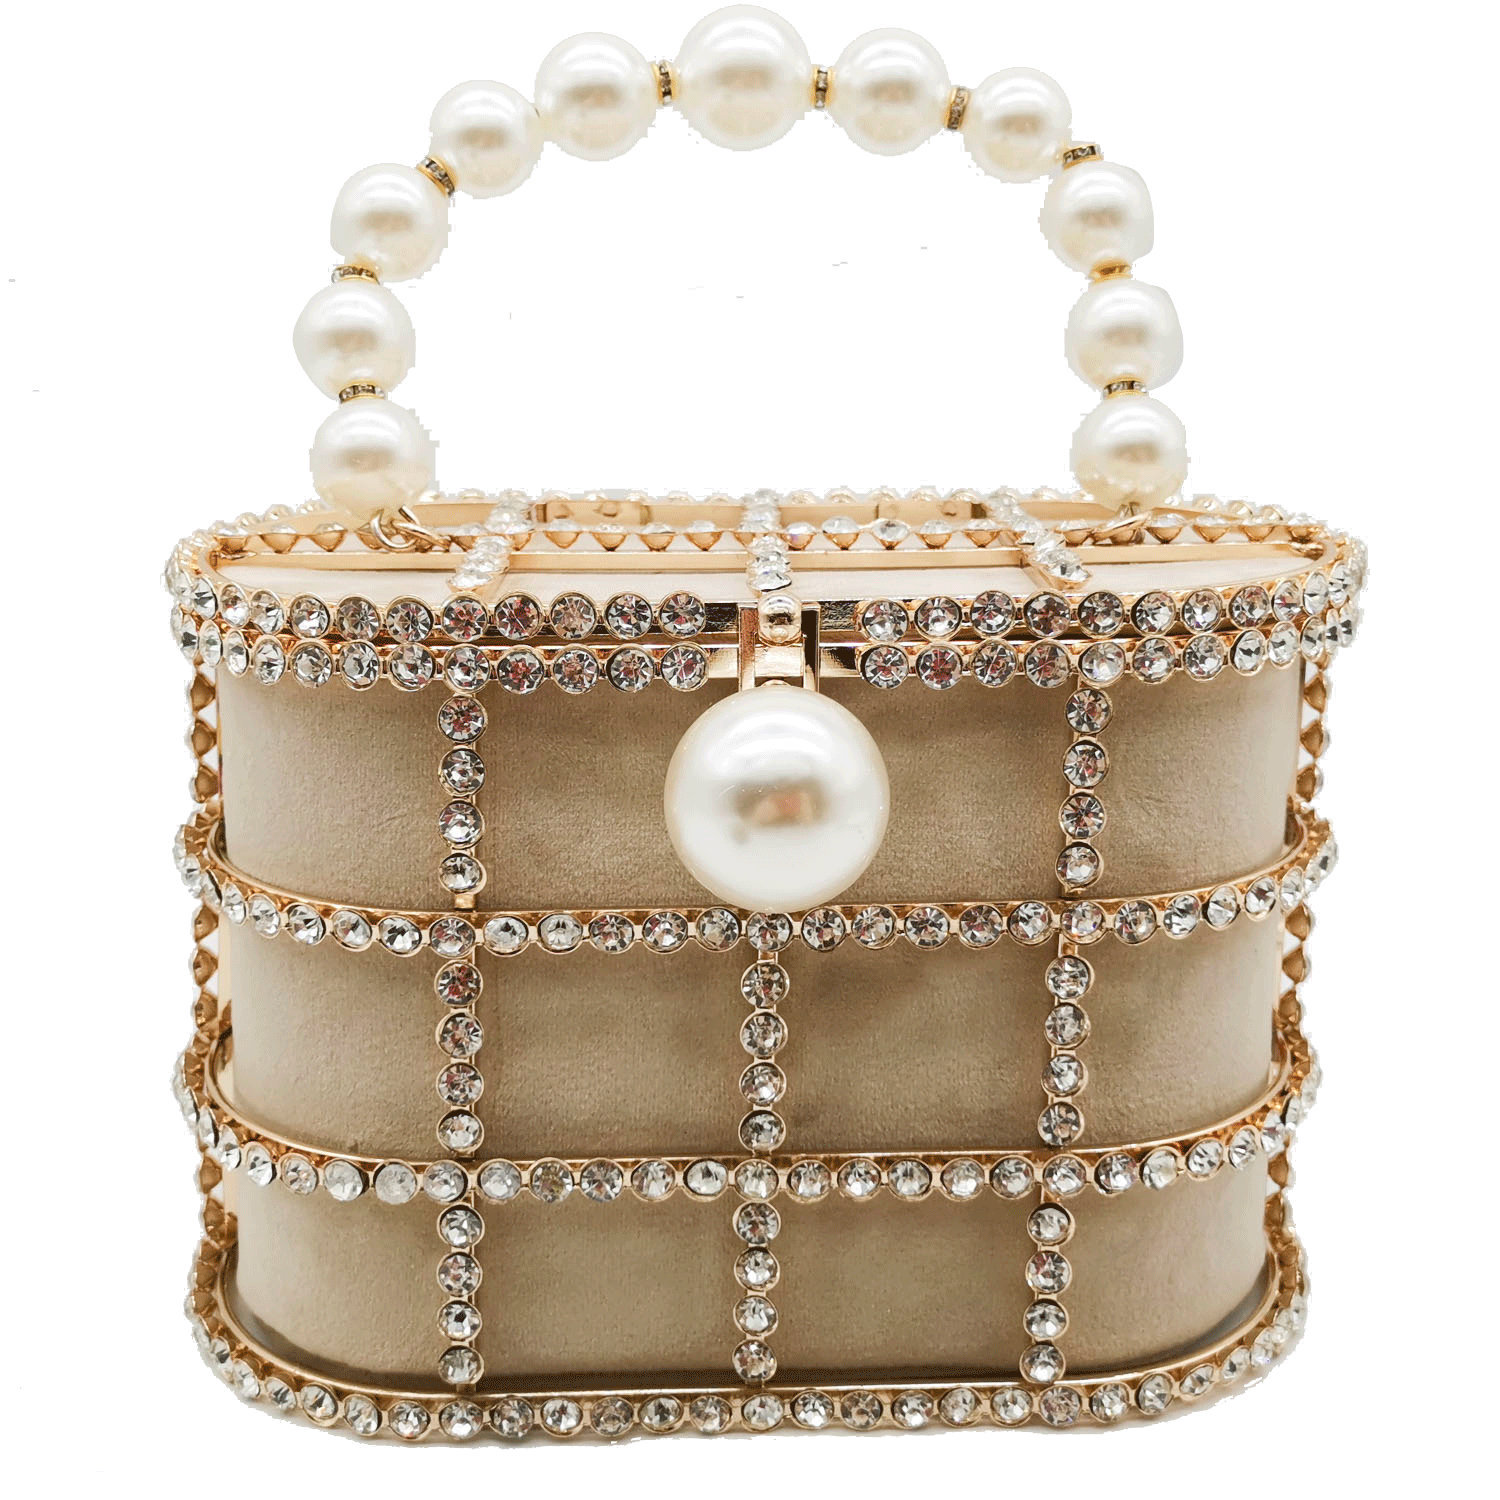 Double Flower Synthetic Pearl Diamond Women Top-Handle Bucket Tote Bag Evening Clutch Purse Ladies Chain Shoulder Crossbody Bag